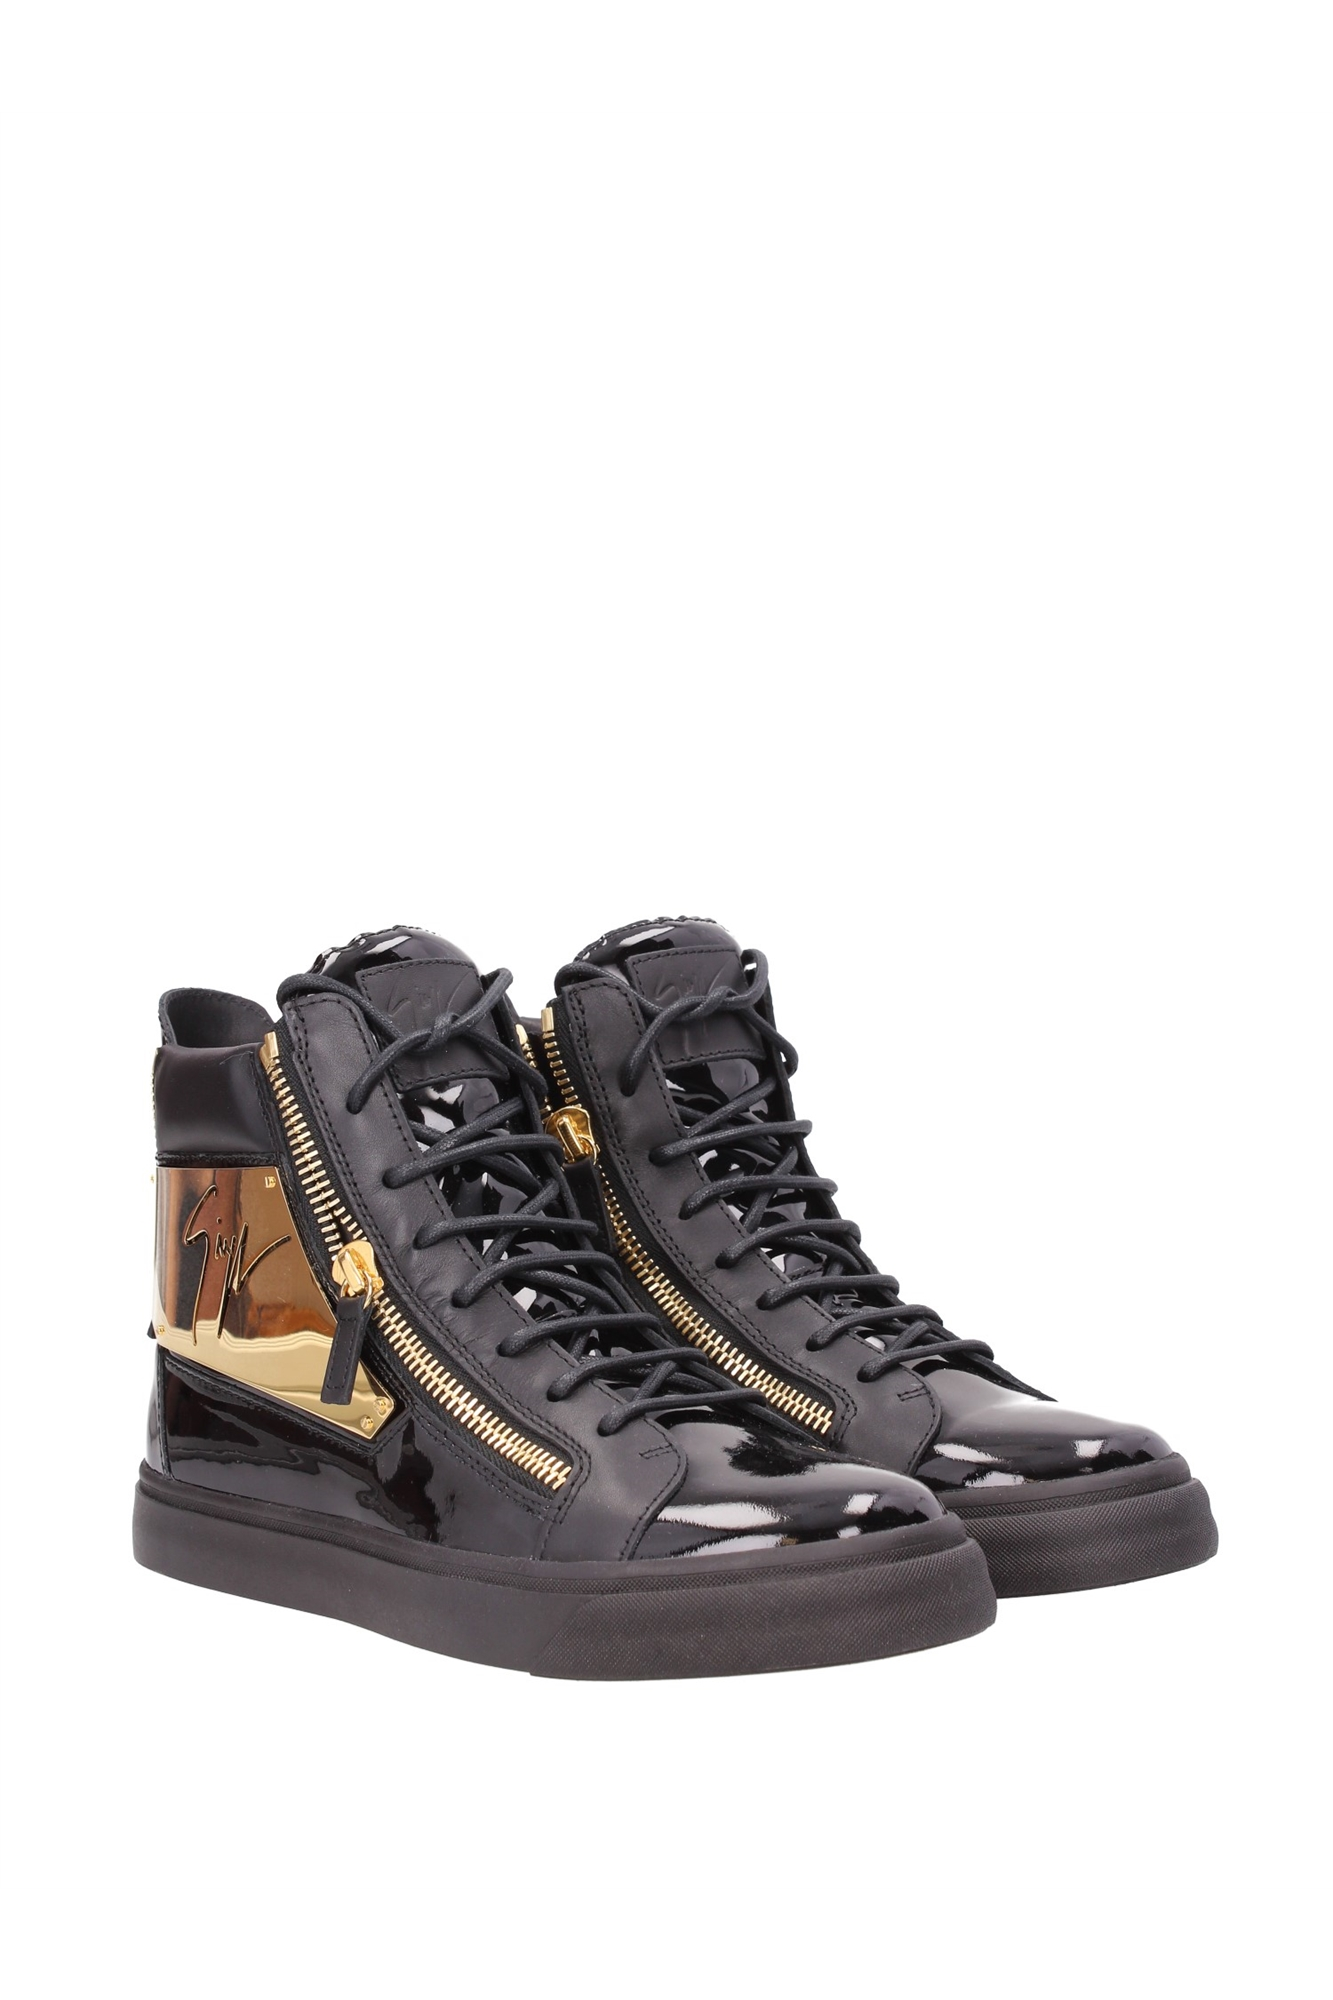 sneakers giuseppe zanotti herren lackleder schwarz rm5018005neor ebay. Black Bedroom Furniture Sets. Home Design Ideas